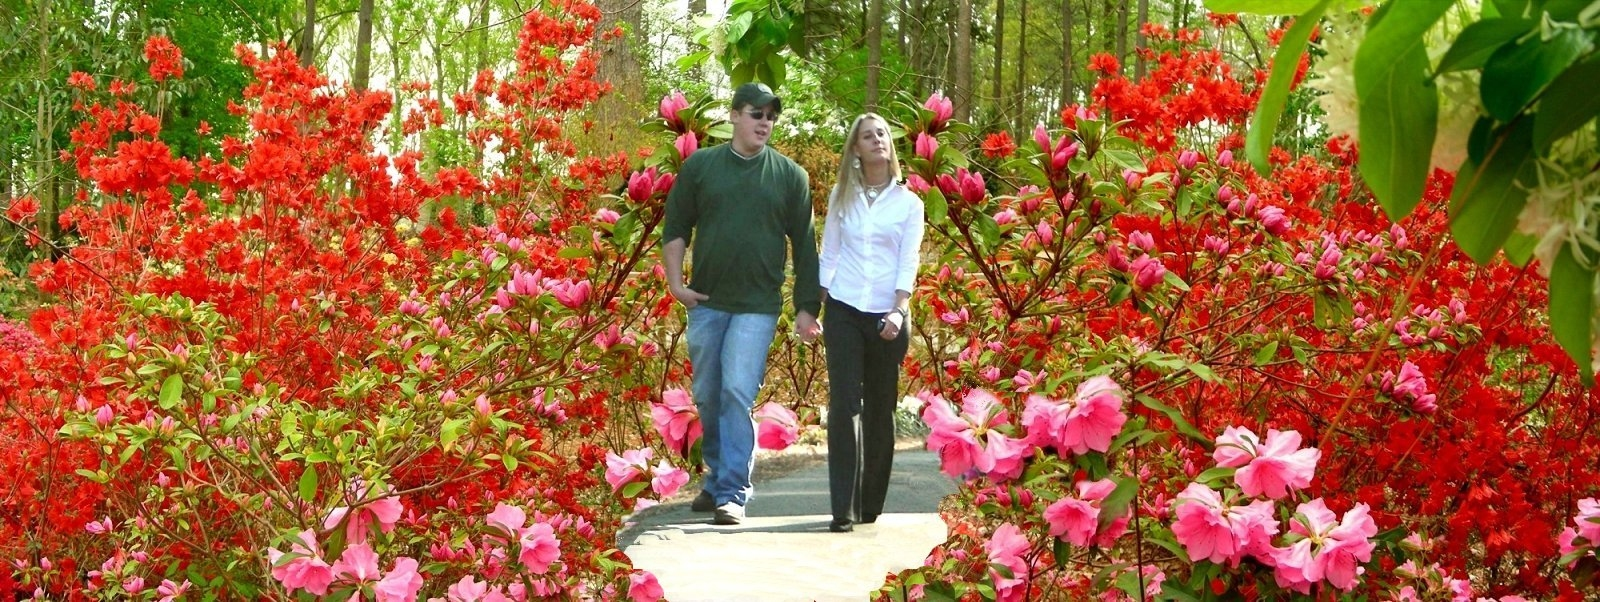 The Red and Pink Azaleas of Mize Azalea Garden in Historic Nacogdoches